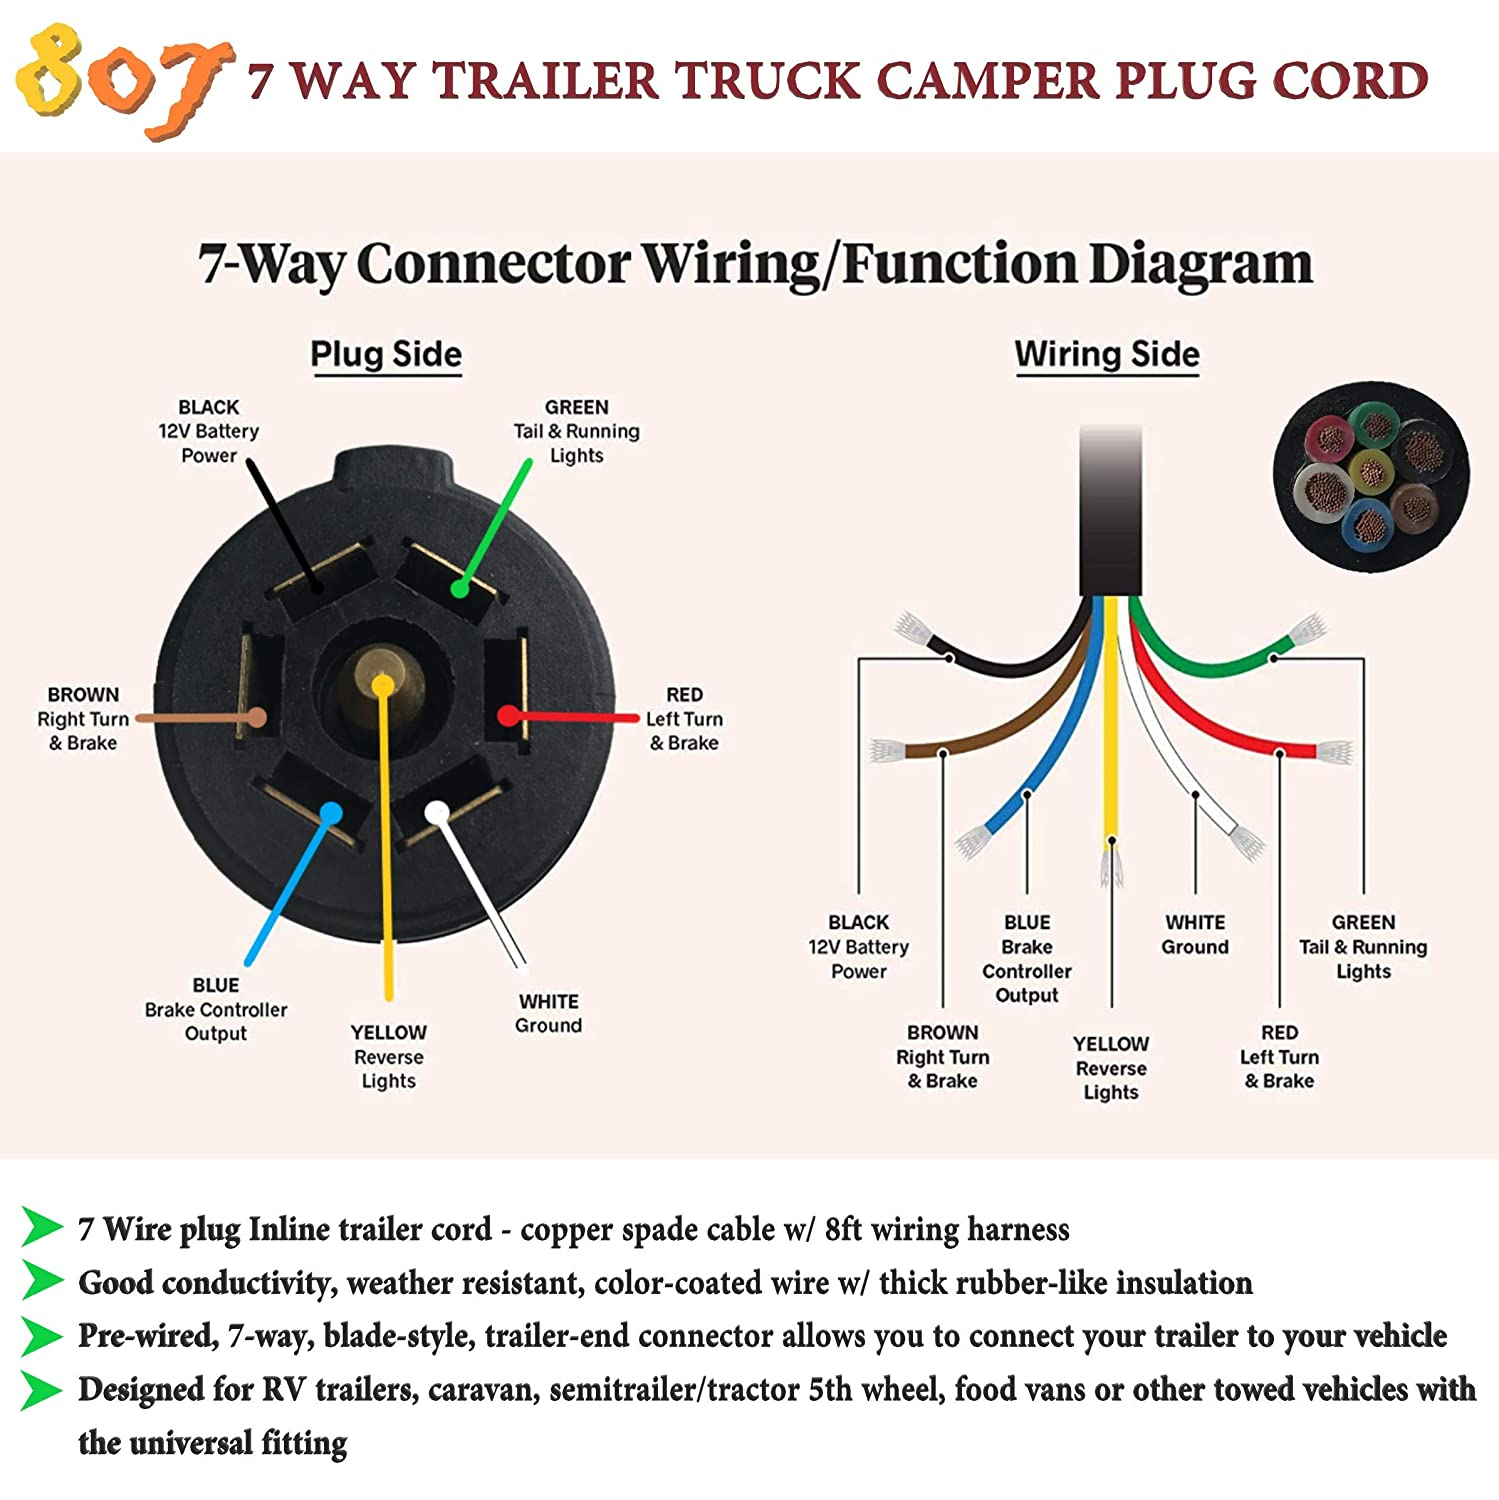 DIAGRAM] Rv 7 Way Trailer Plug Wiring Diagram FULL Version HD Quality Wiring  Diagram - KINDDIAGRAM5.TUTTOCESENAWEB.ITtuttocesenaweb.it